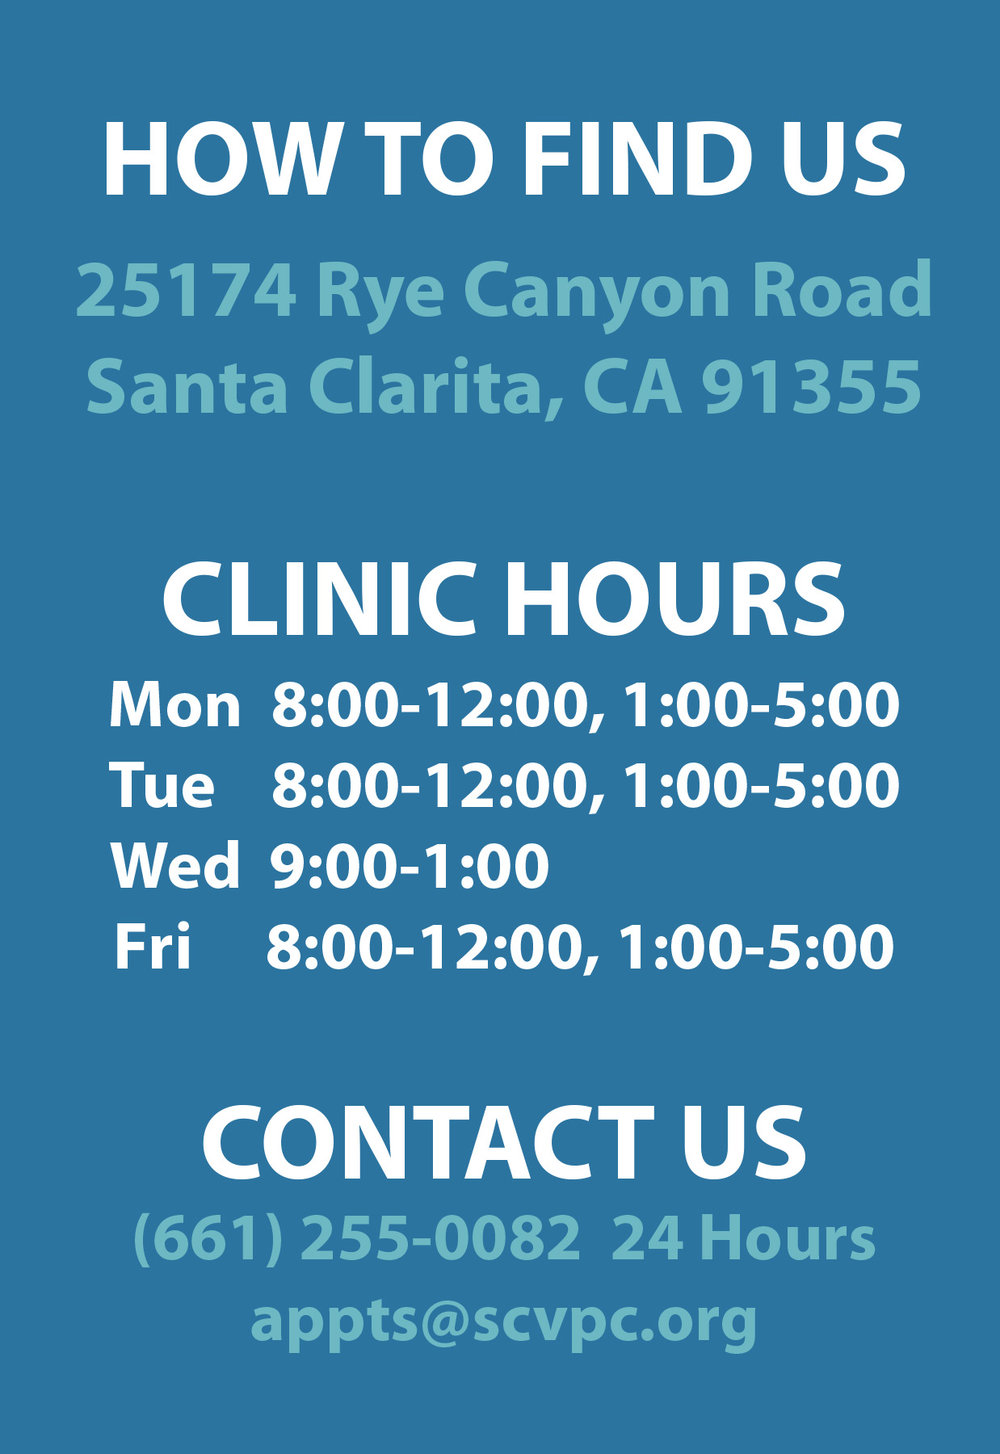 SCV Pregnancy Center Location and Hours